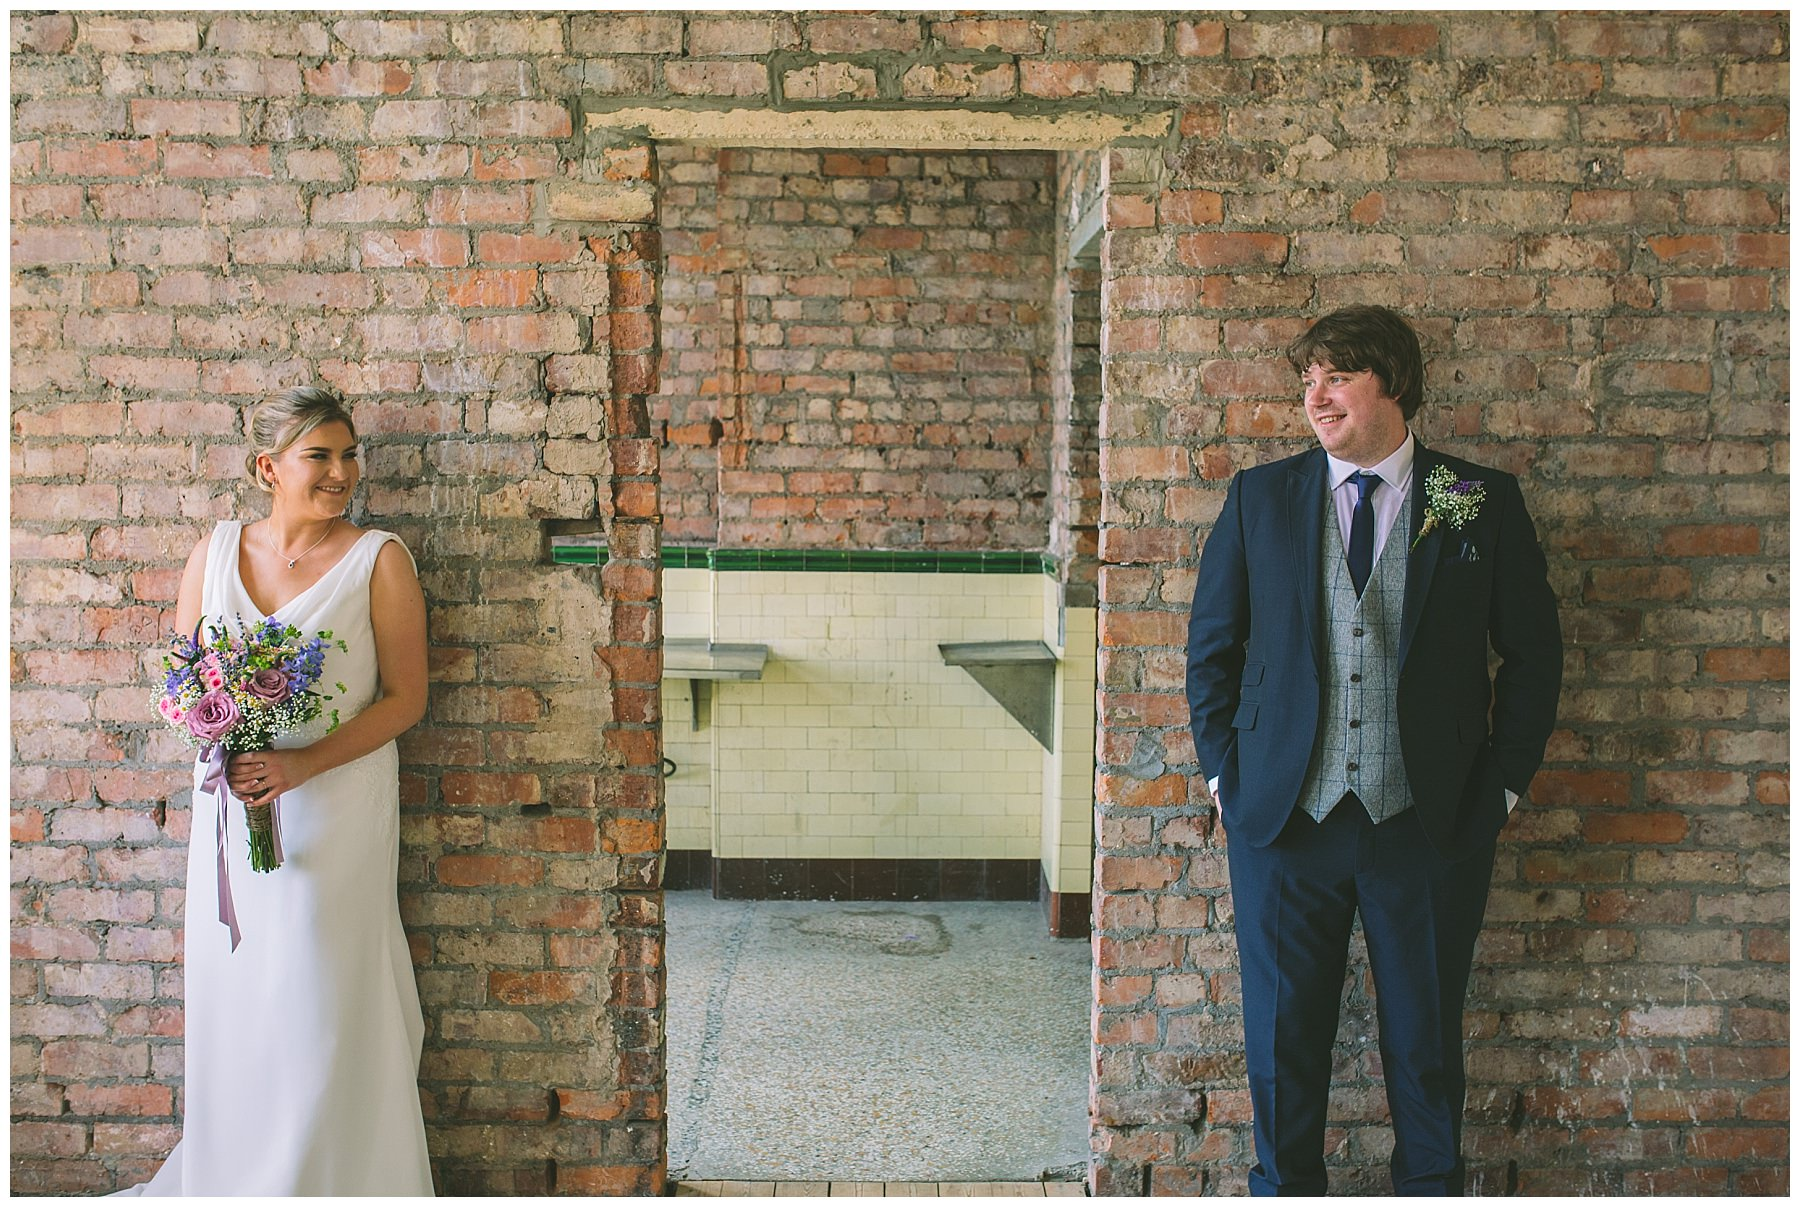 Wedding photography at Victoria Baths